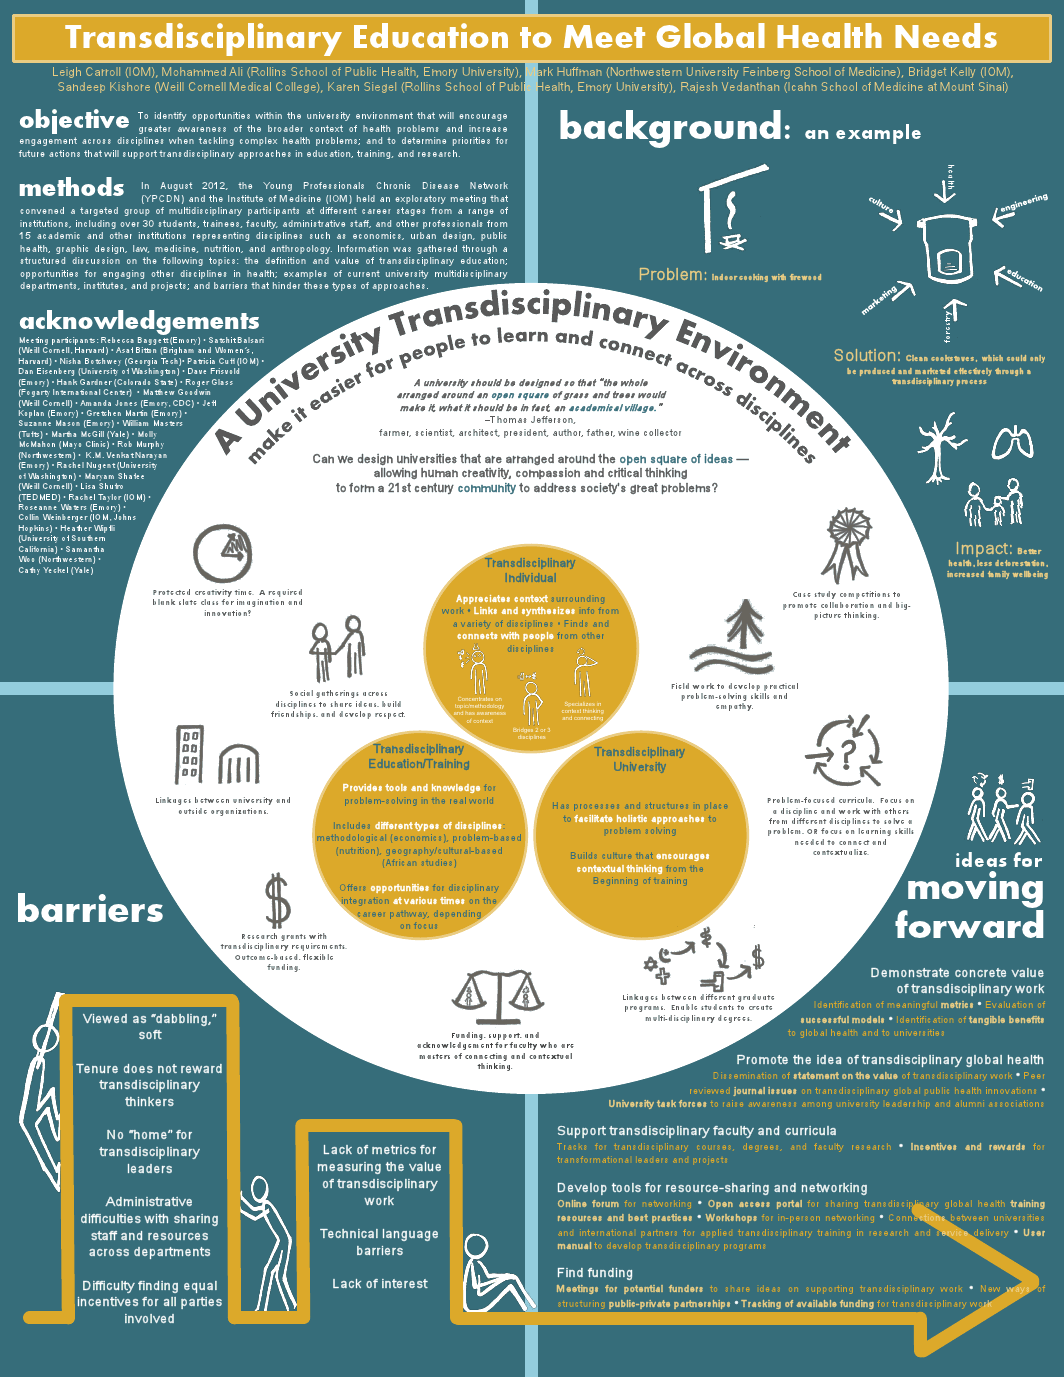 Poster design academic - Innovative Poster Highlights Work Towards Trans Disciplinary Education For Global Health